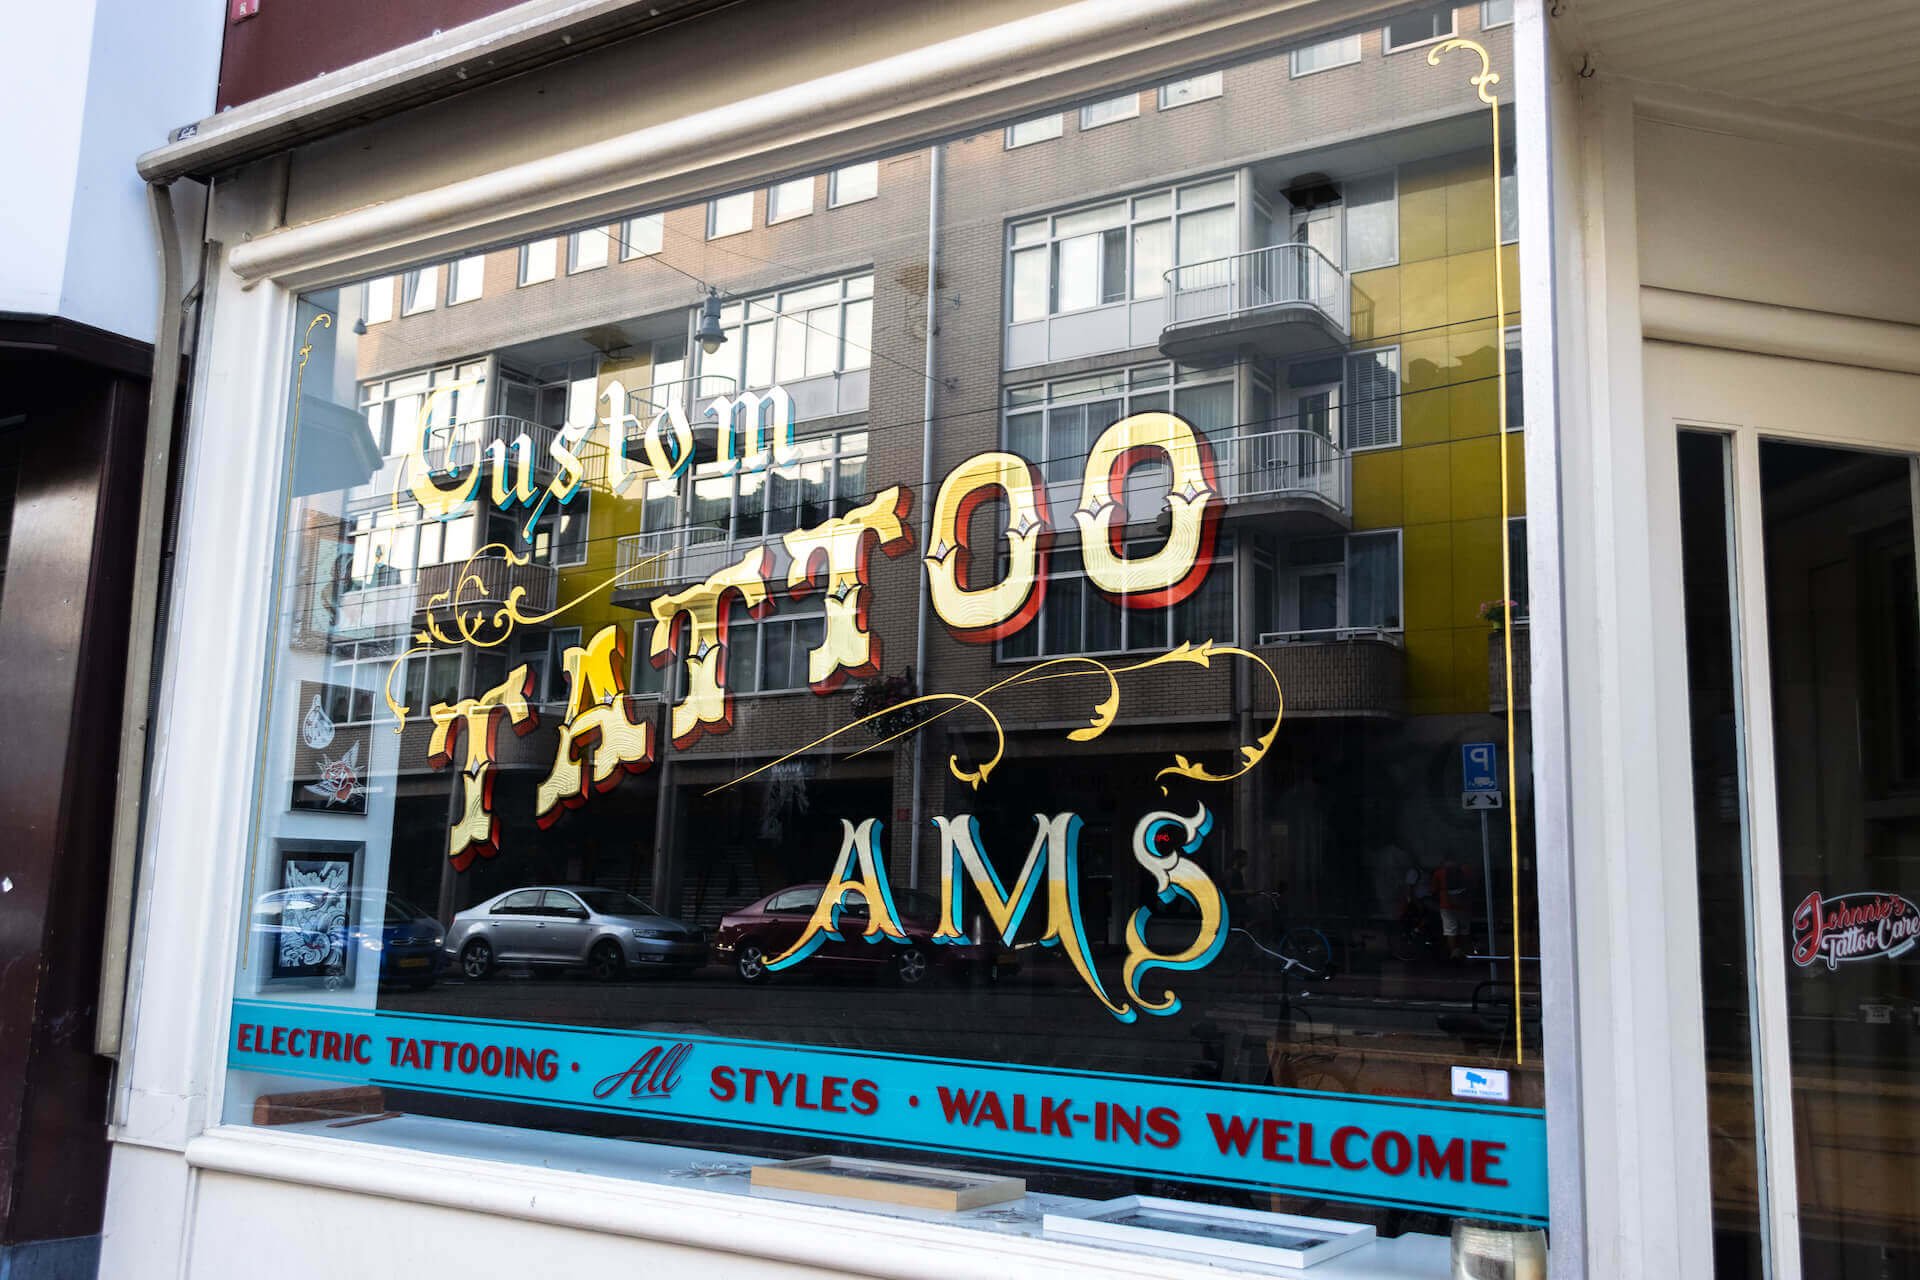 Bladgoud op glas tattoo shop